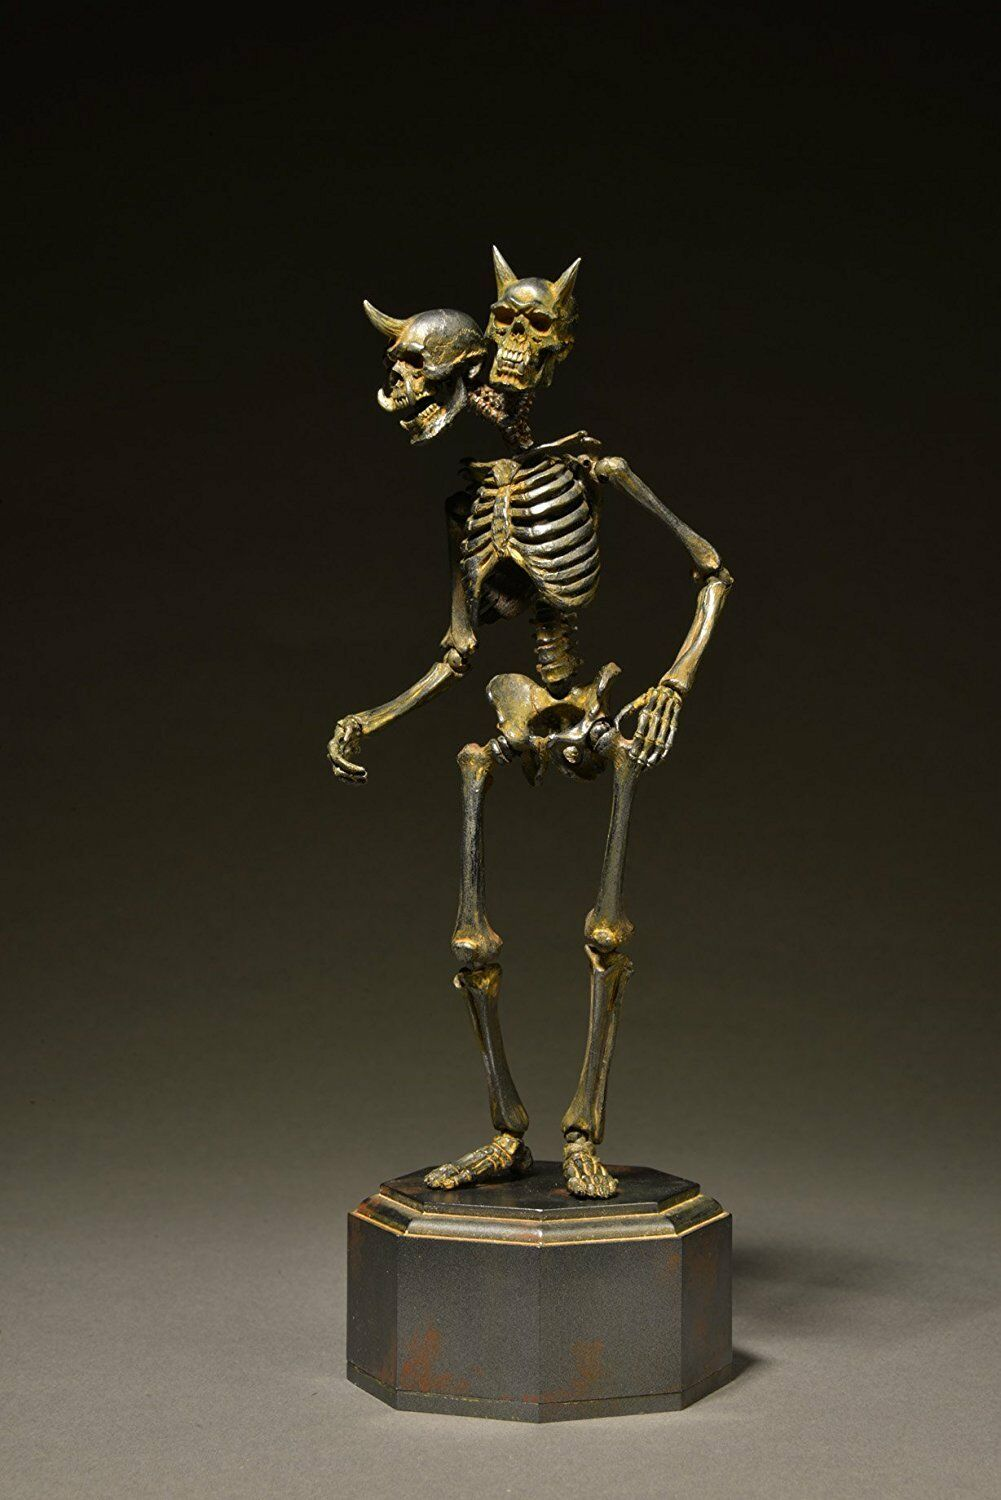 Takeya Gaikotsu Skeleton Iron ROTdish Braun Iron rust KT-005 action figure